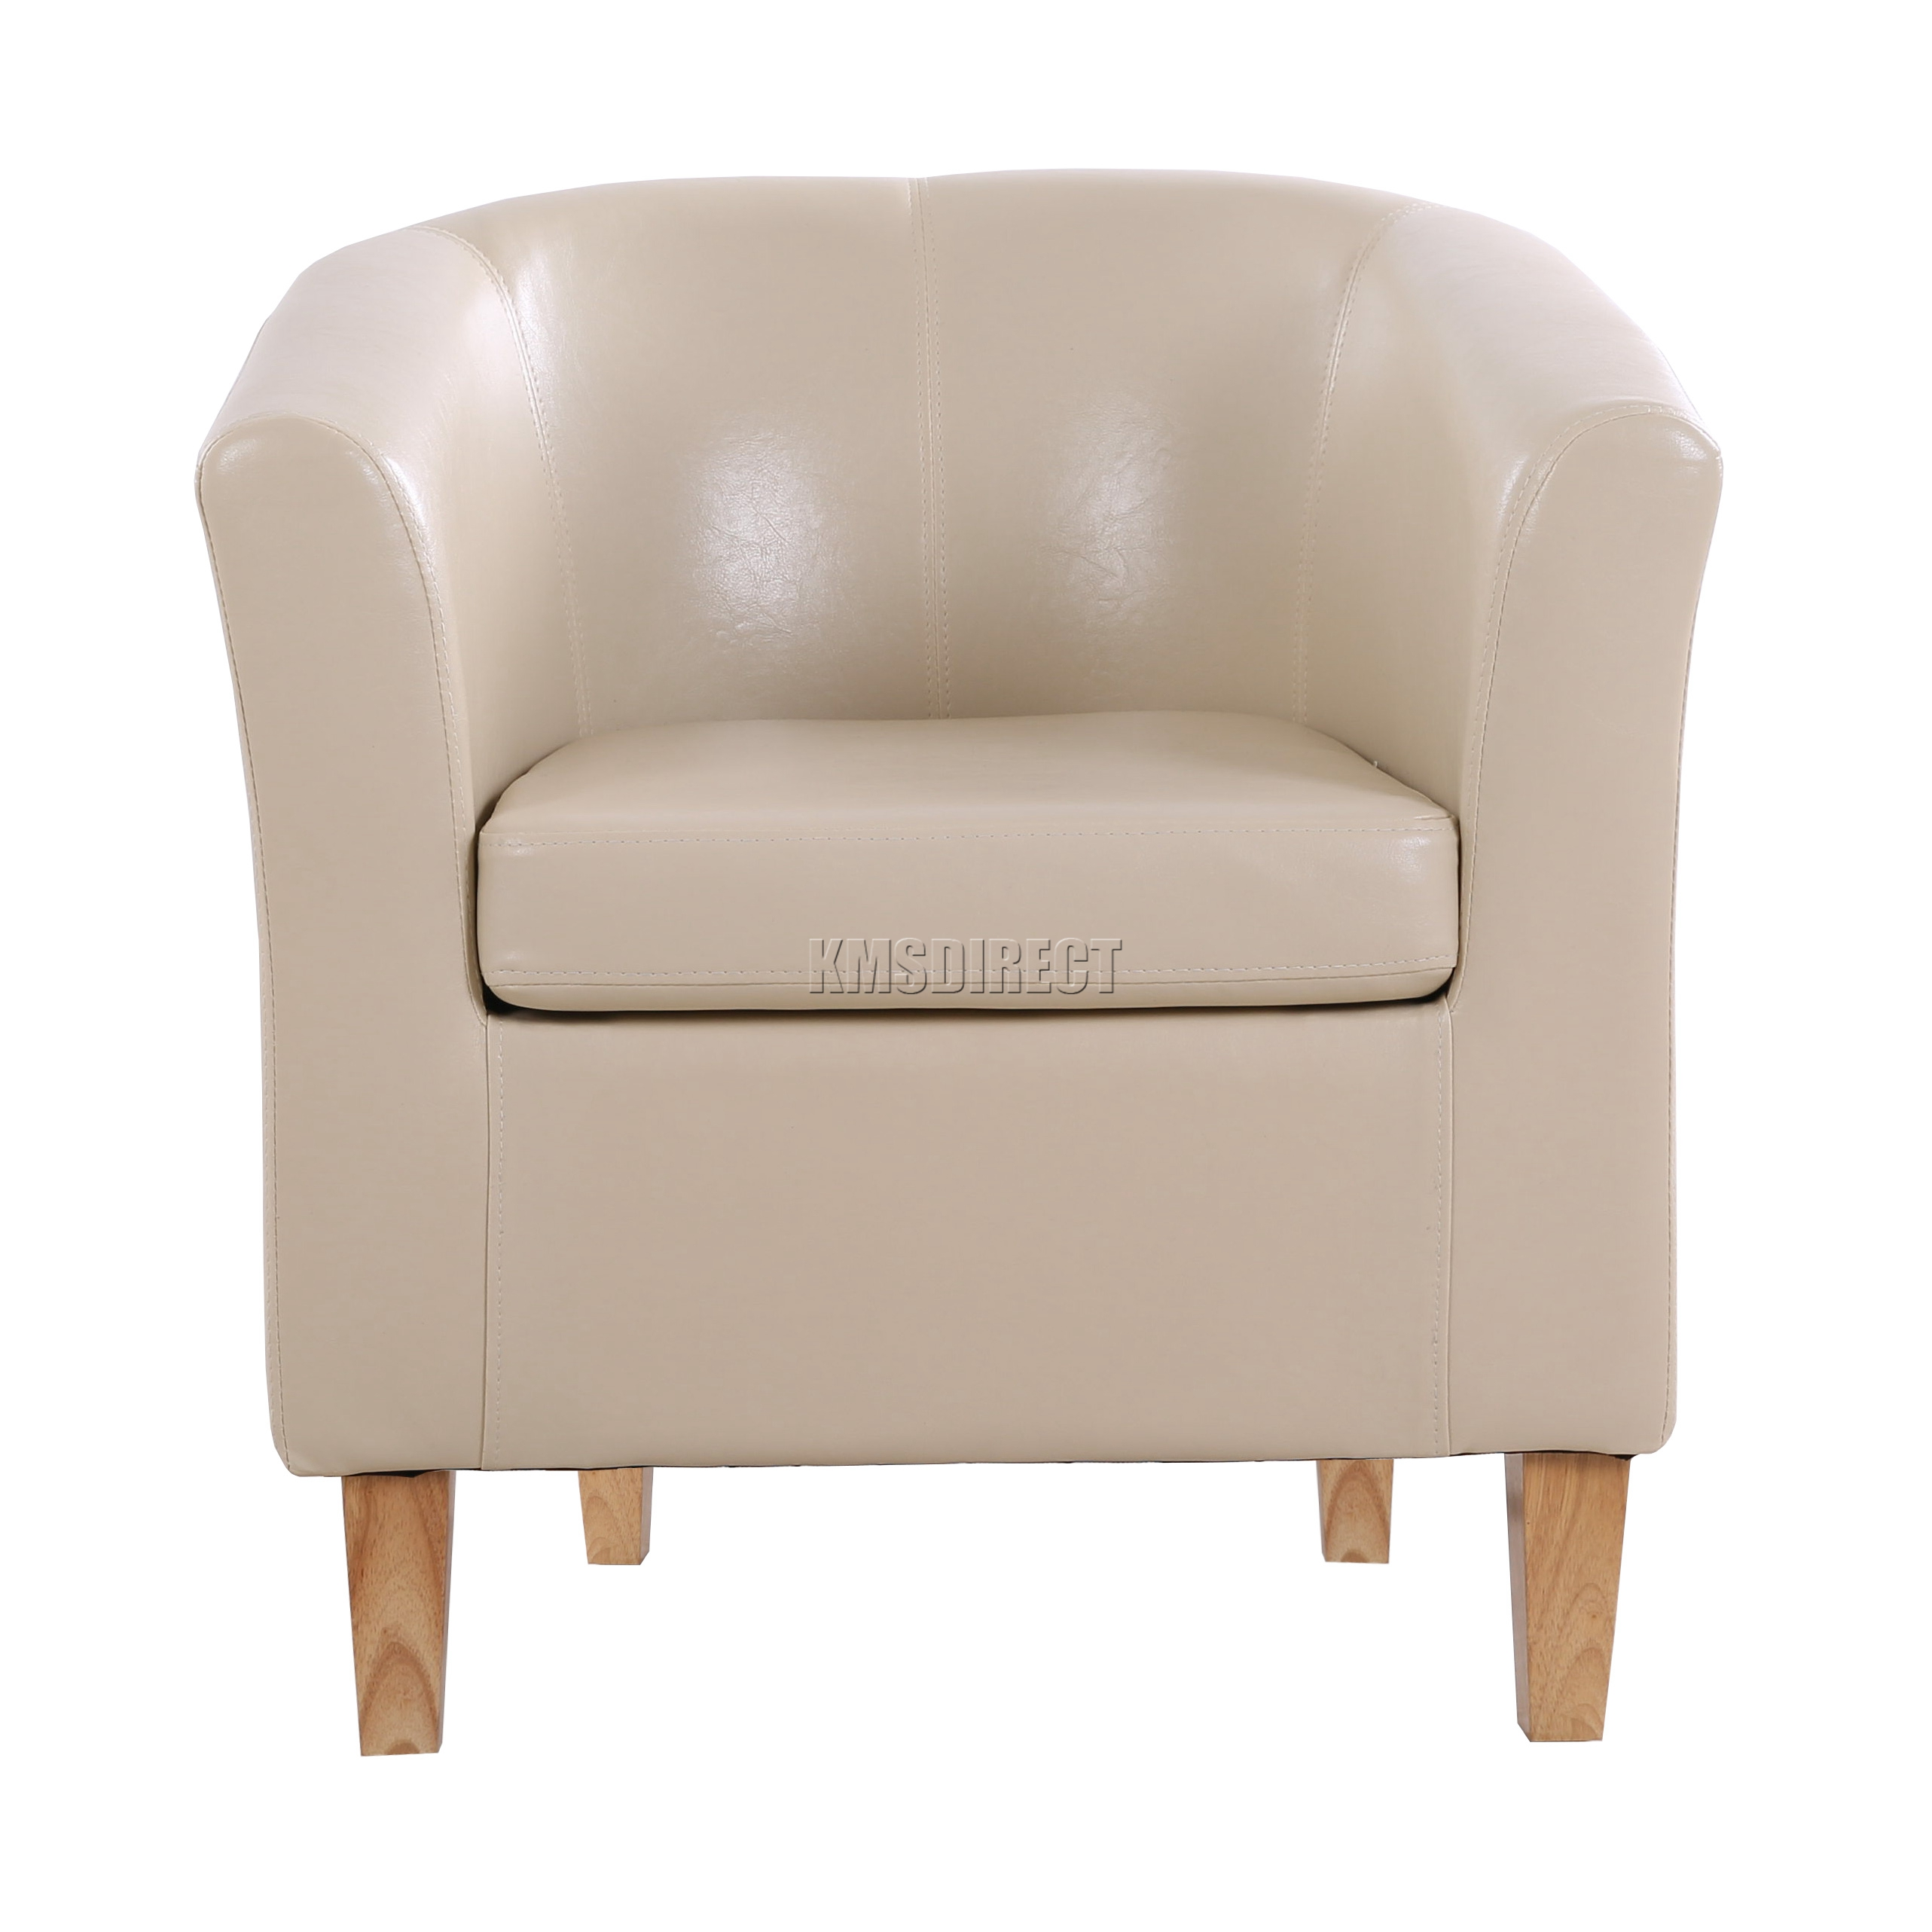 tub chair armchair faux leather dining room office lounge furniture